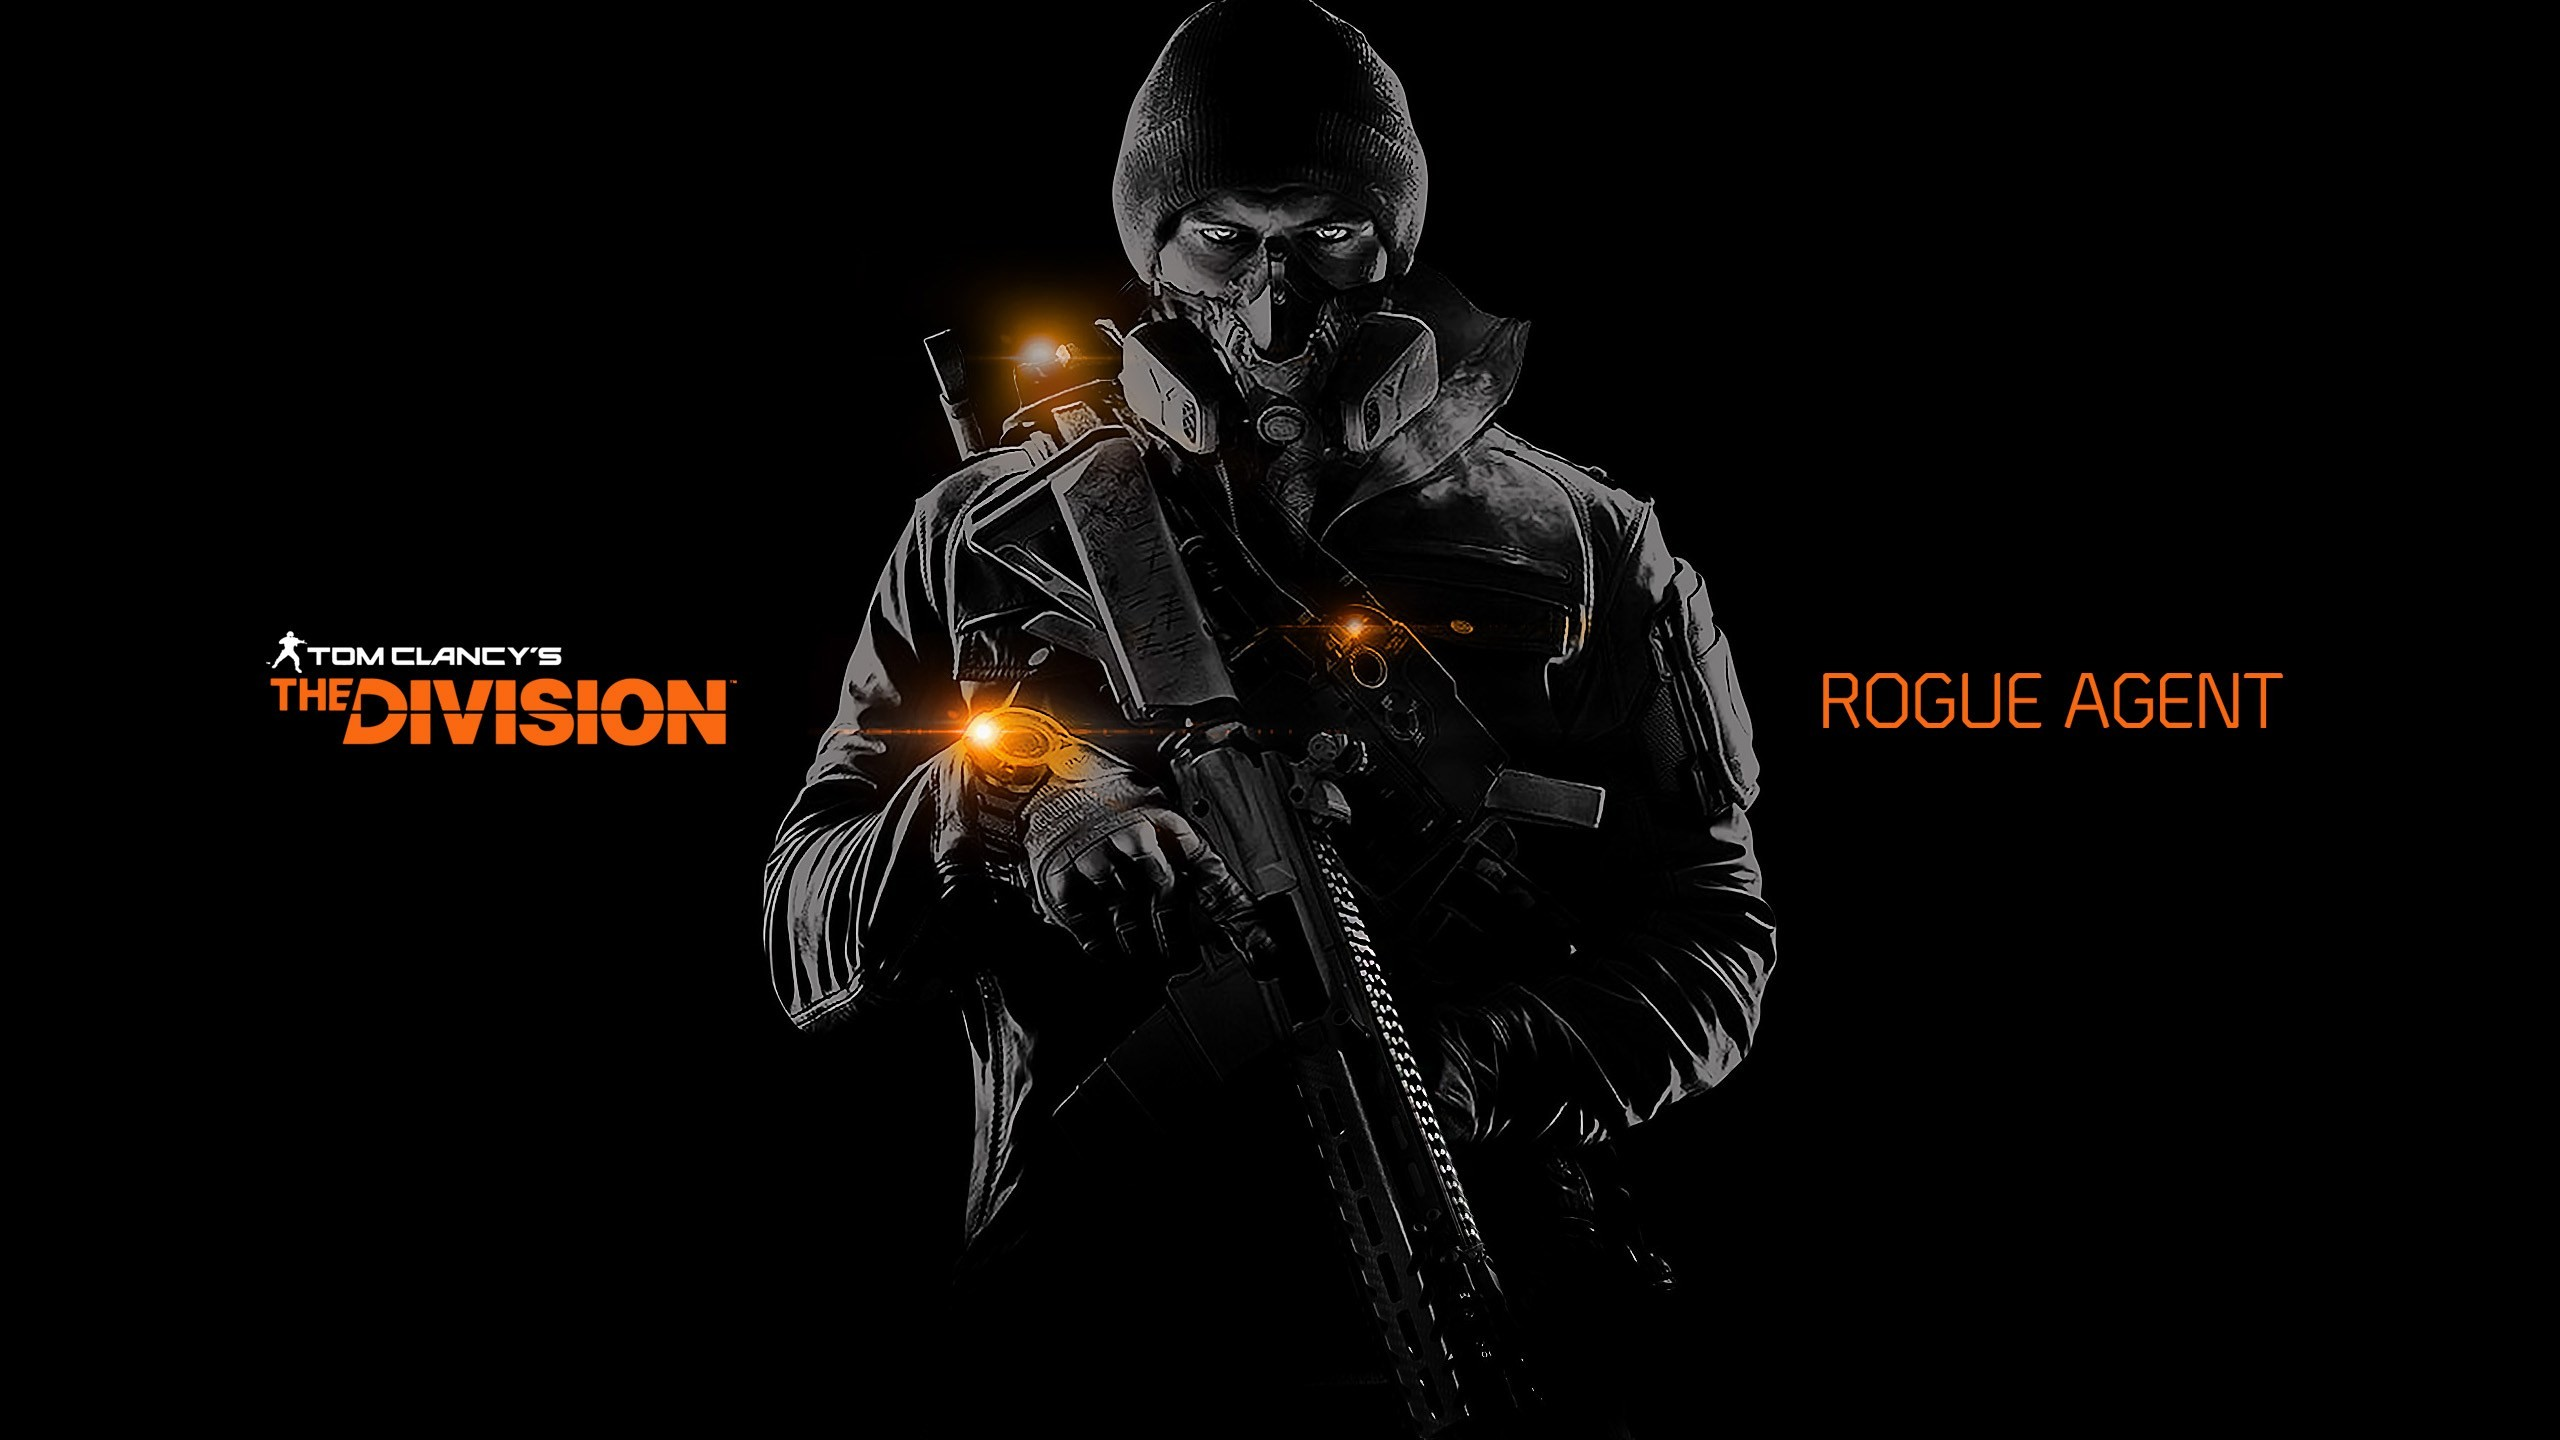 Take a look at below some of the latest images that you can use for a  wallpaper and screenshots of The Division.